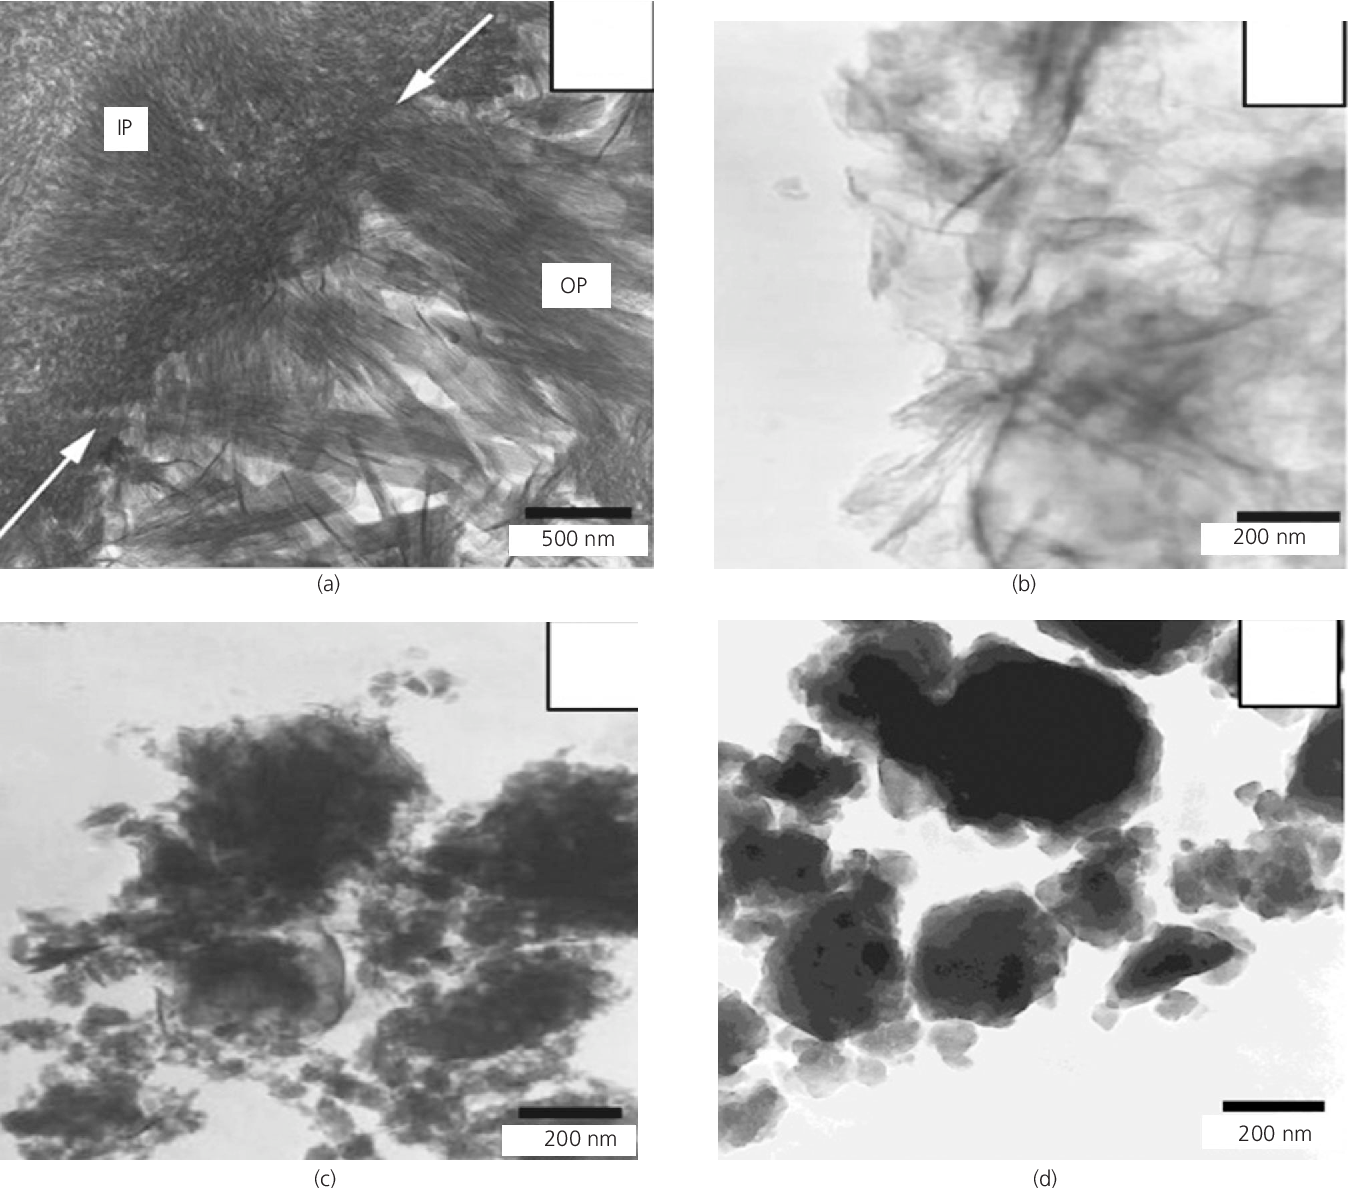 Figure 3 From Morphology Of Calcium Silicate Hydrate (C-S